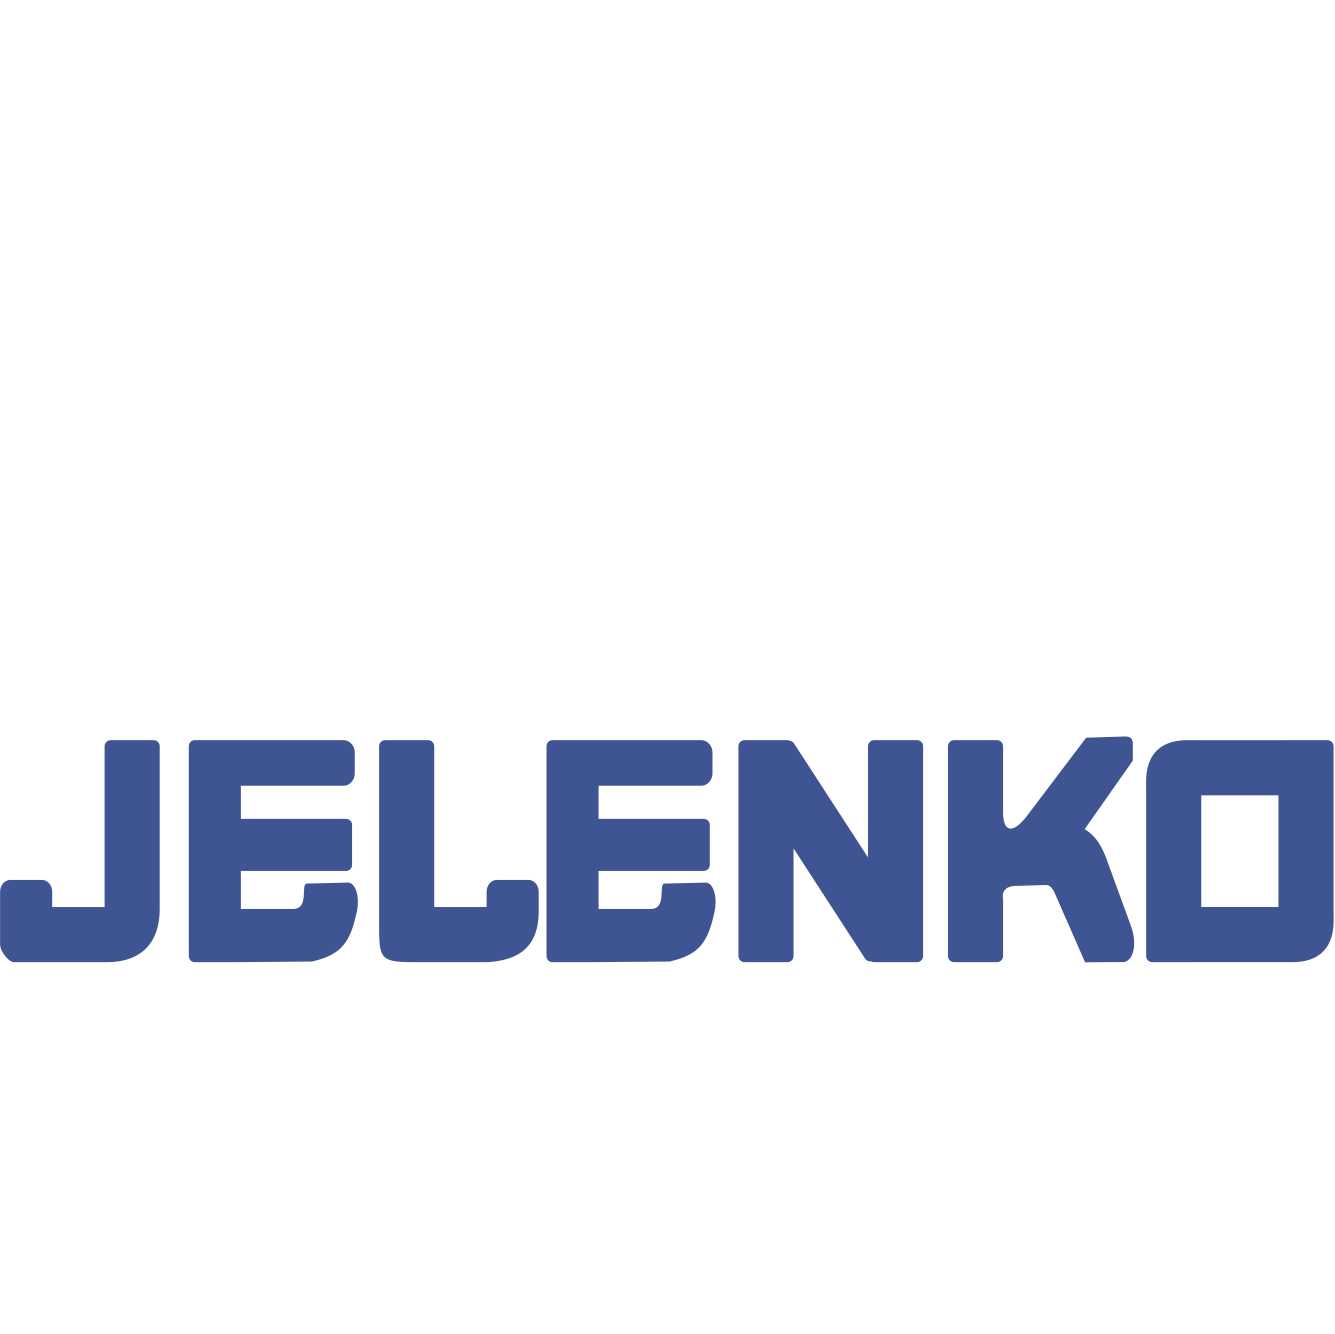 Jelenko Cast-Pro Crucible Holder